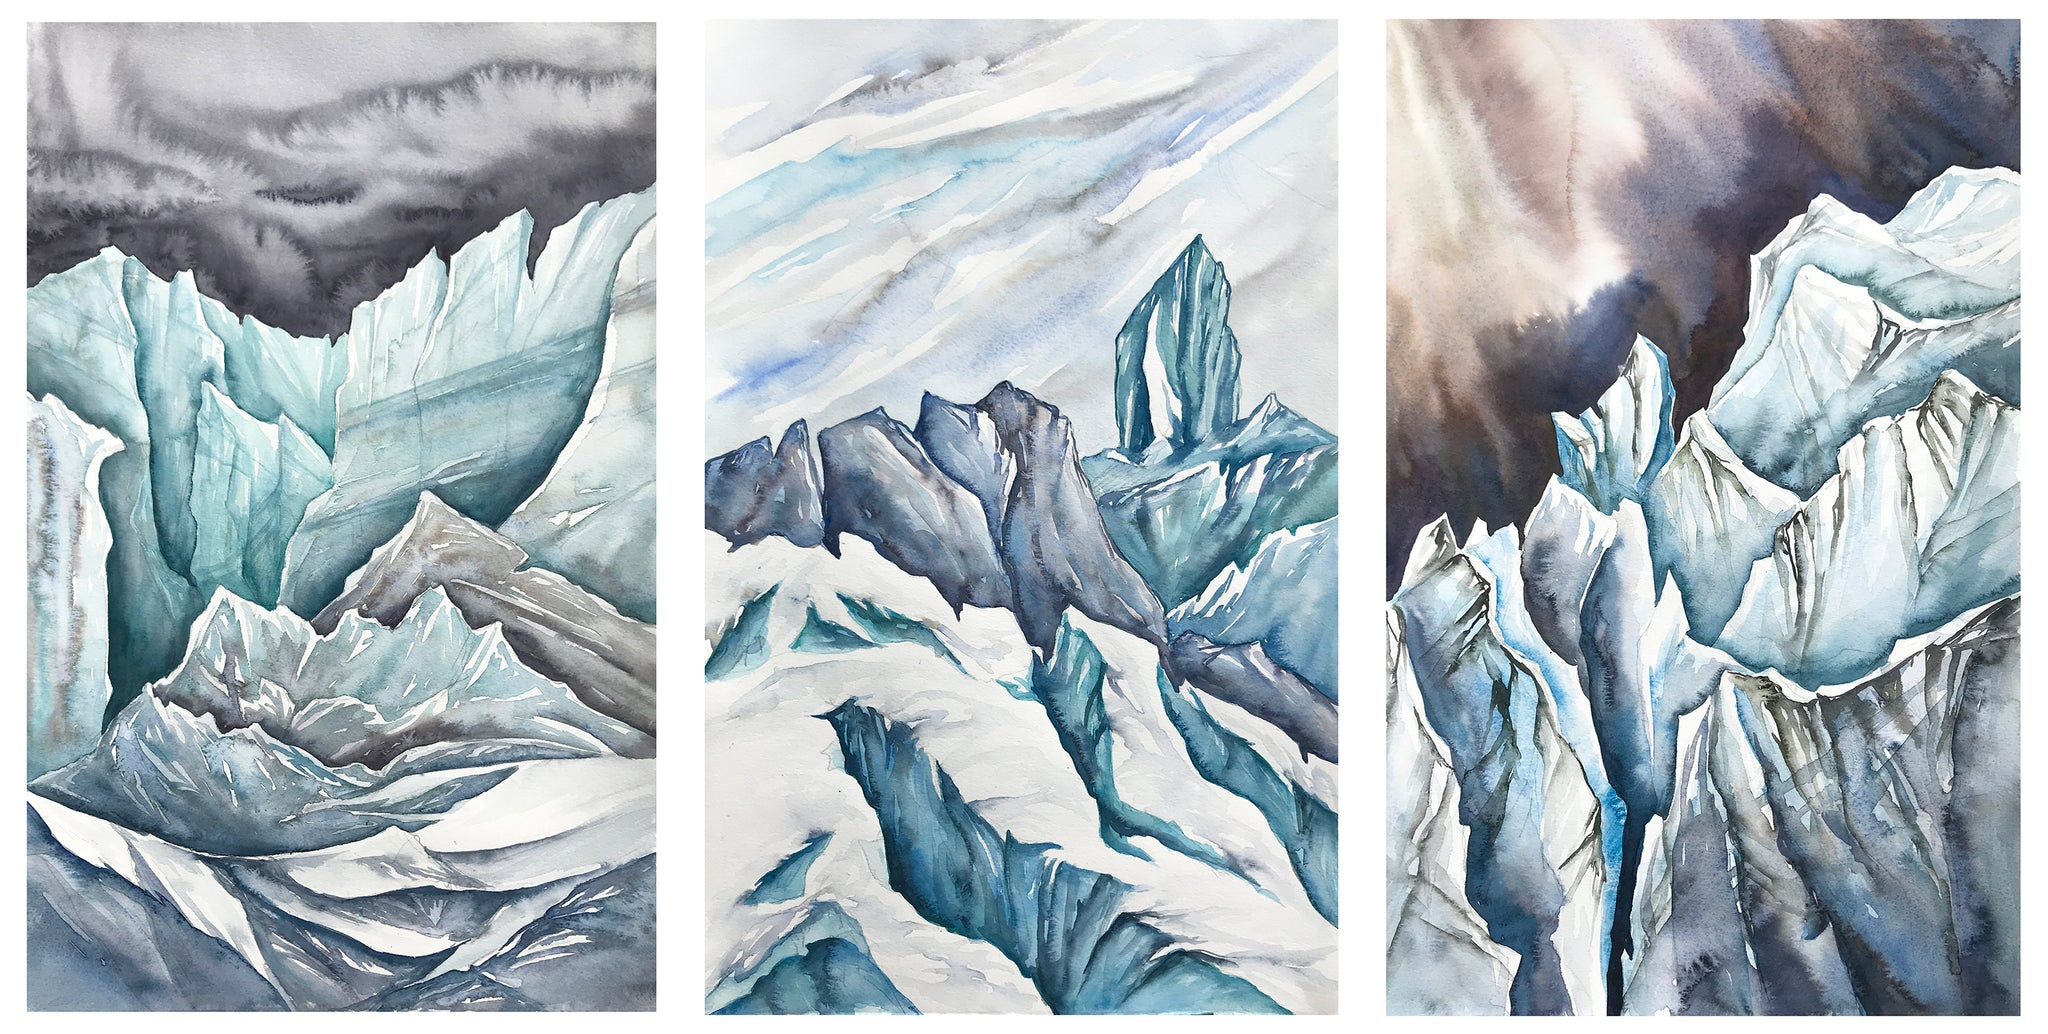 Giordano paintings of three glaciers in Chamonix.